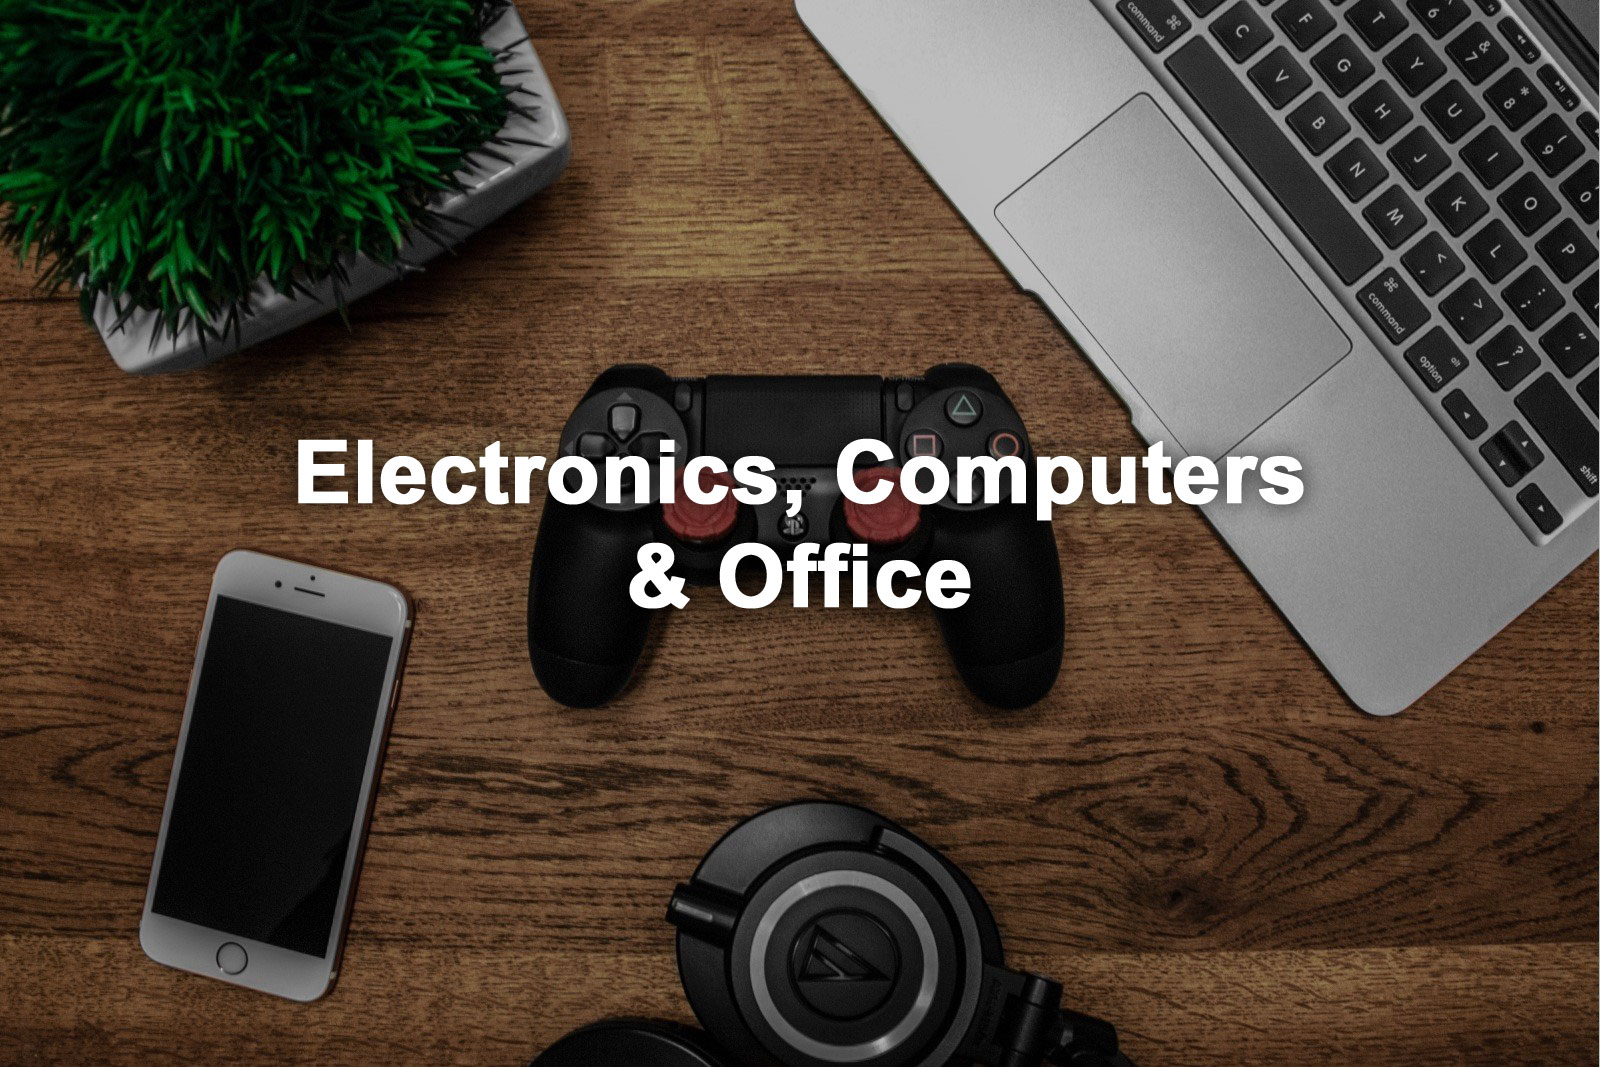 Electronics, Computers & Office